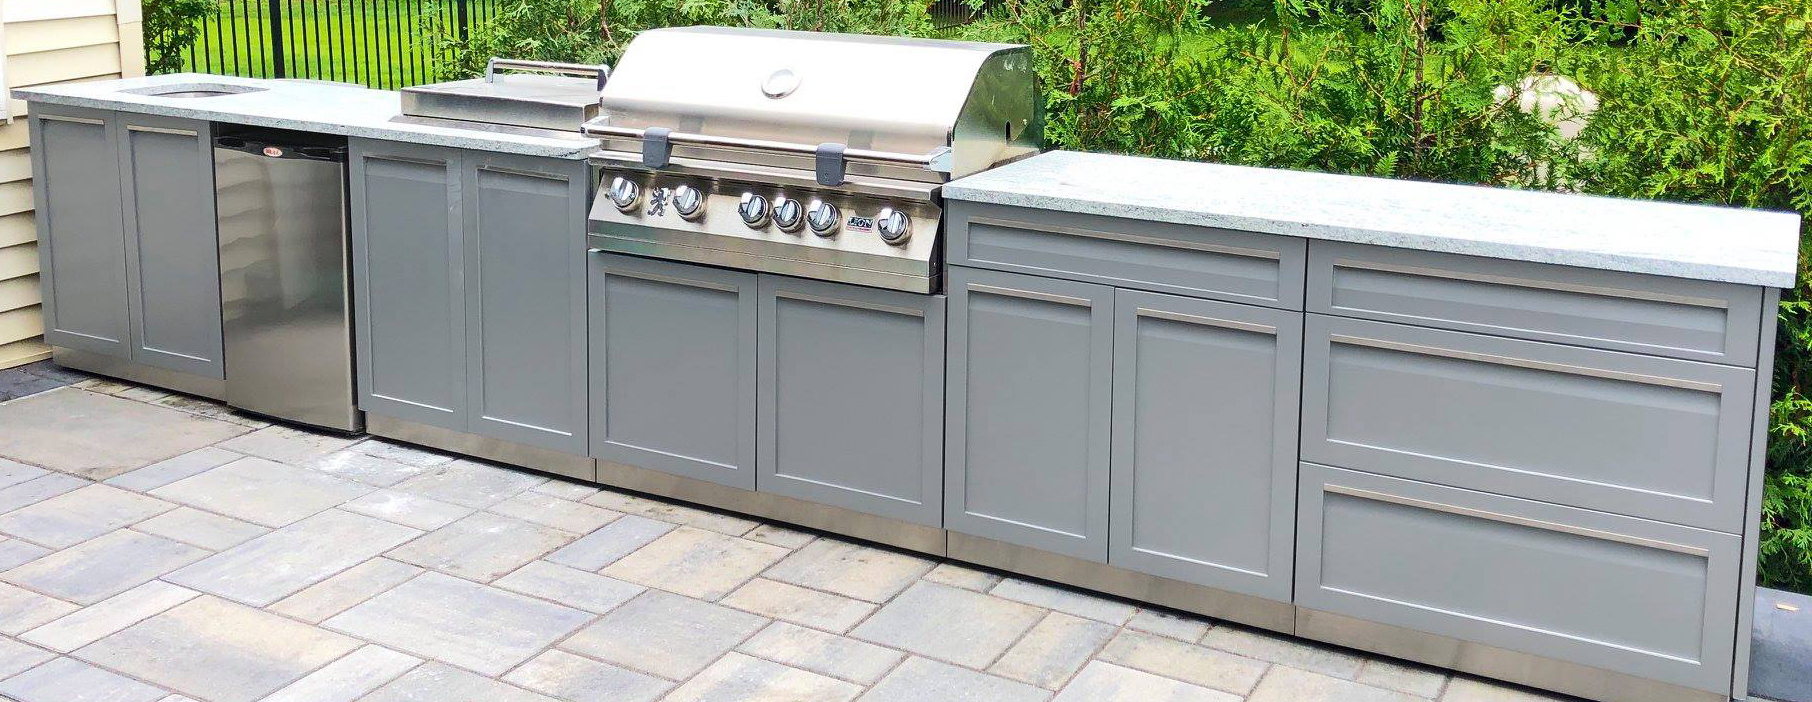 How to clean stainless steel outdoor kitchen cabinets 1